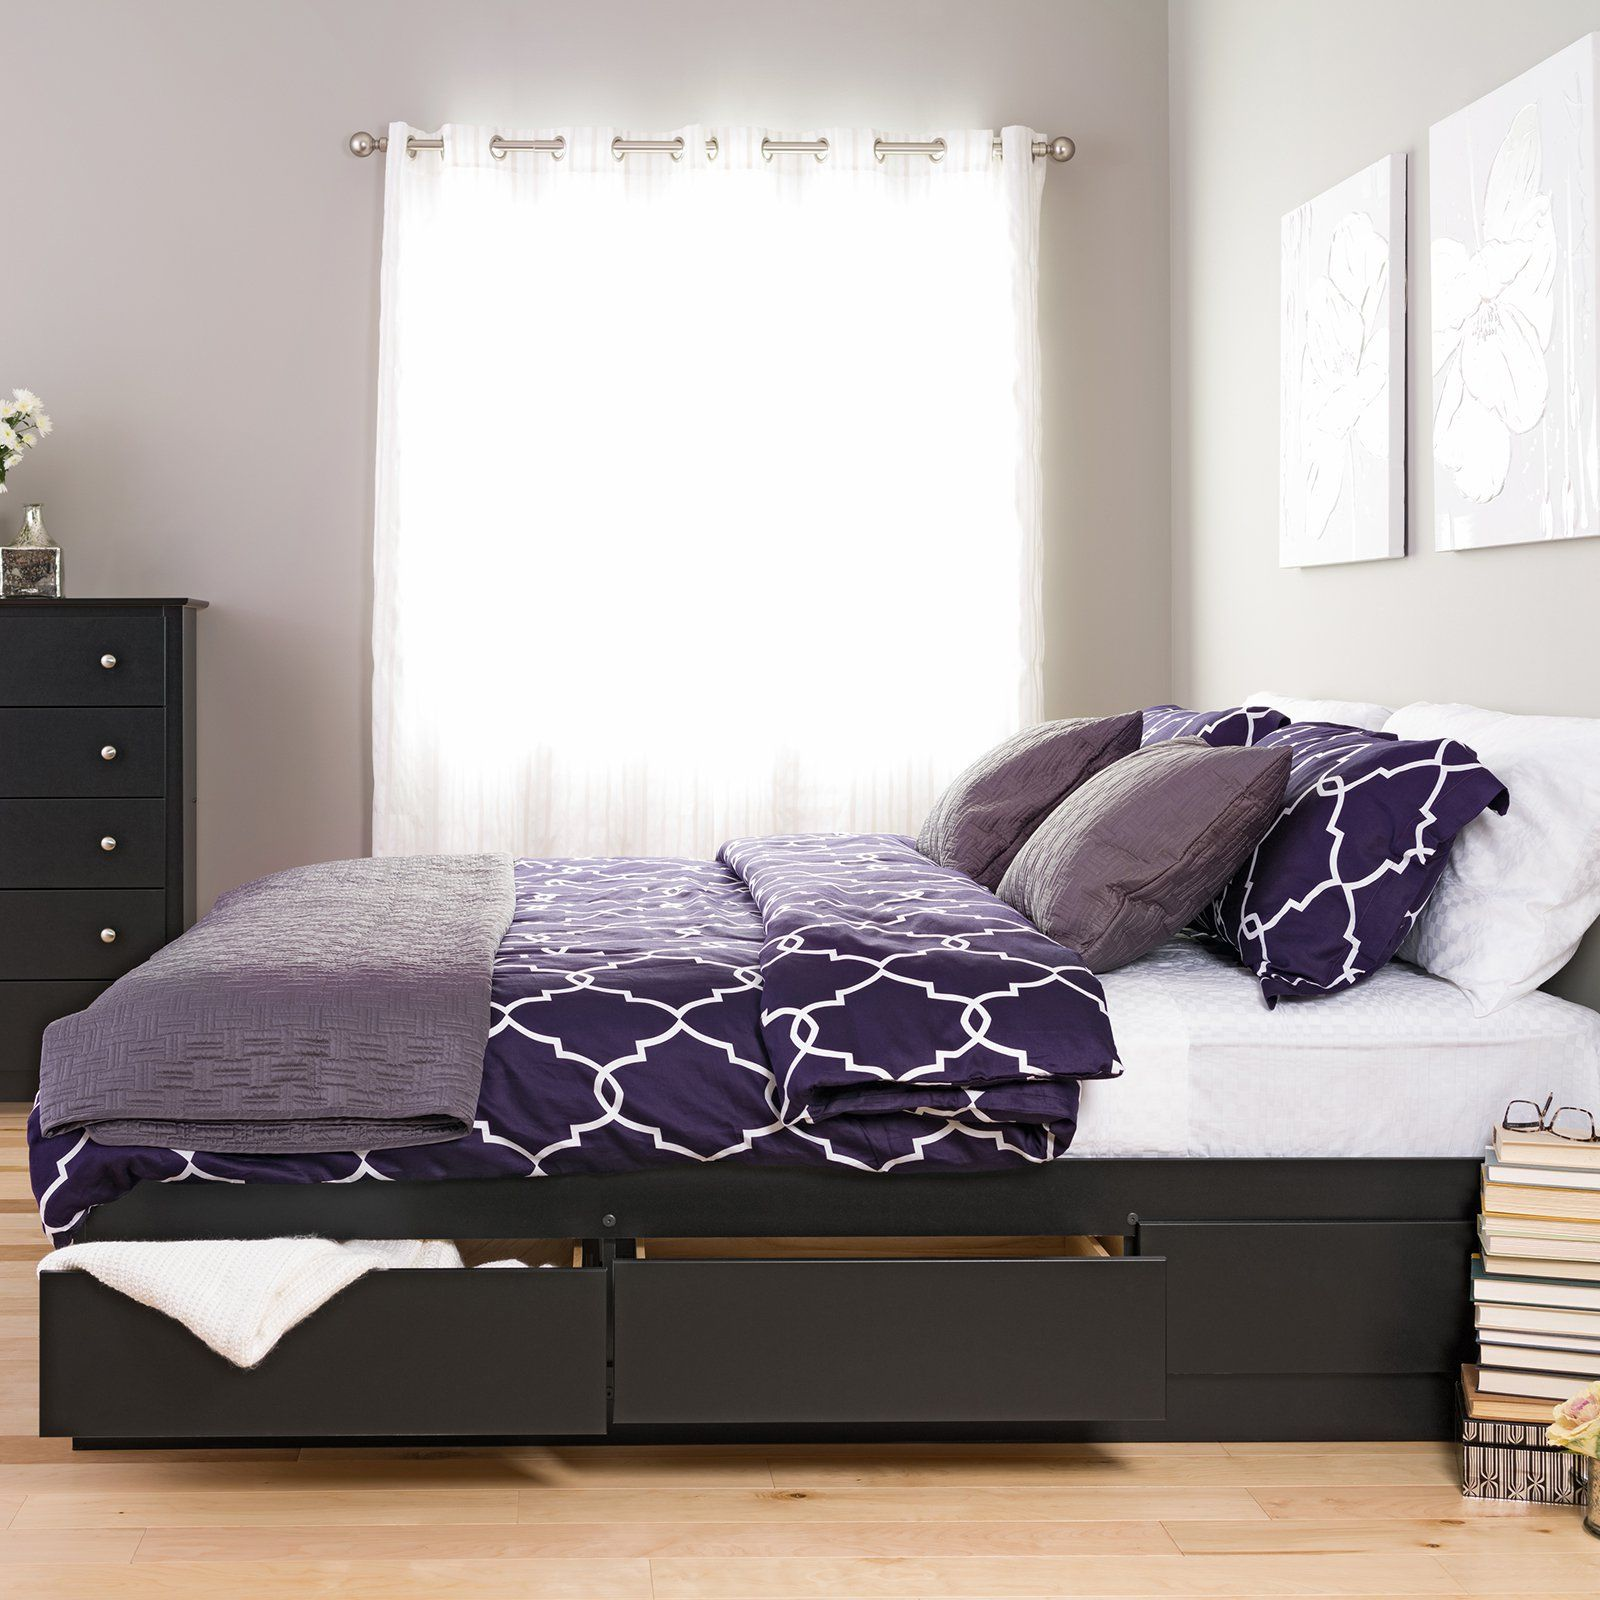 Basic Storage Platform Bed The perfect bination of style and